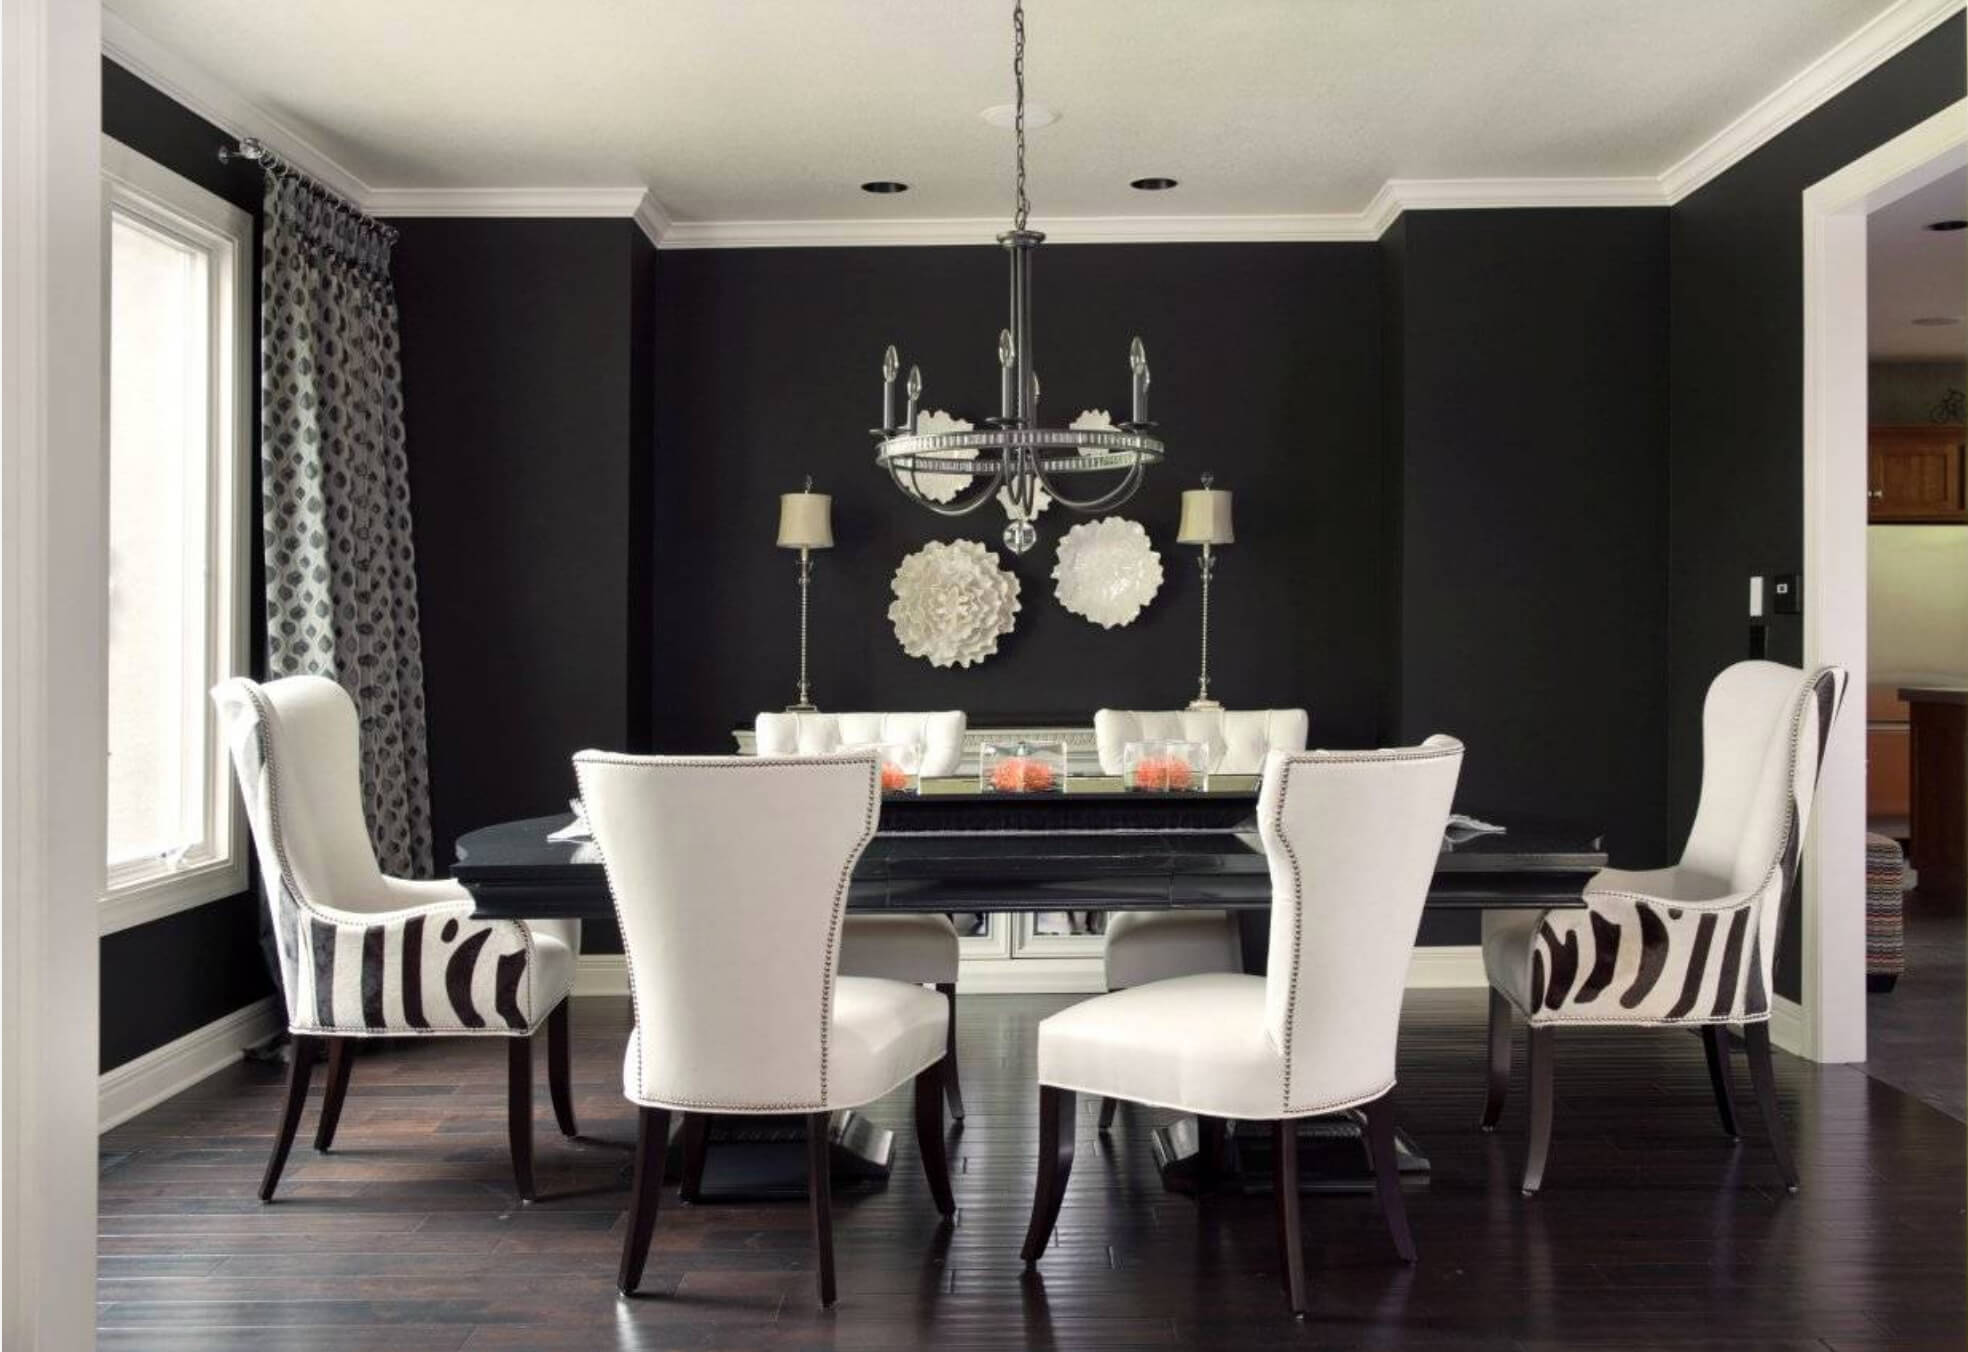 10 Creative Ideas for Dining Room Walls